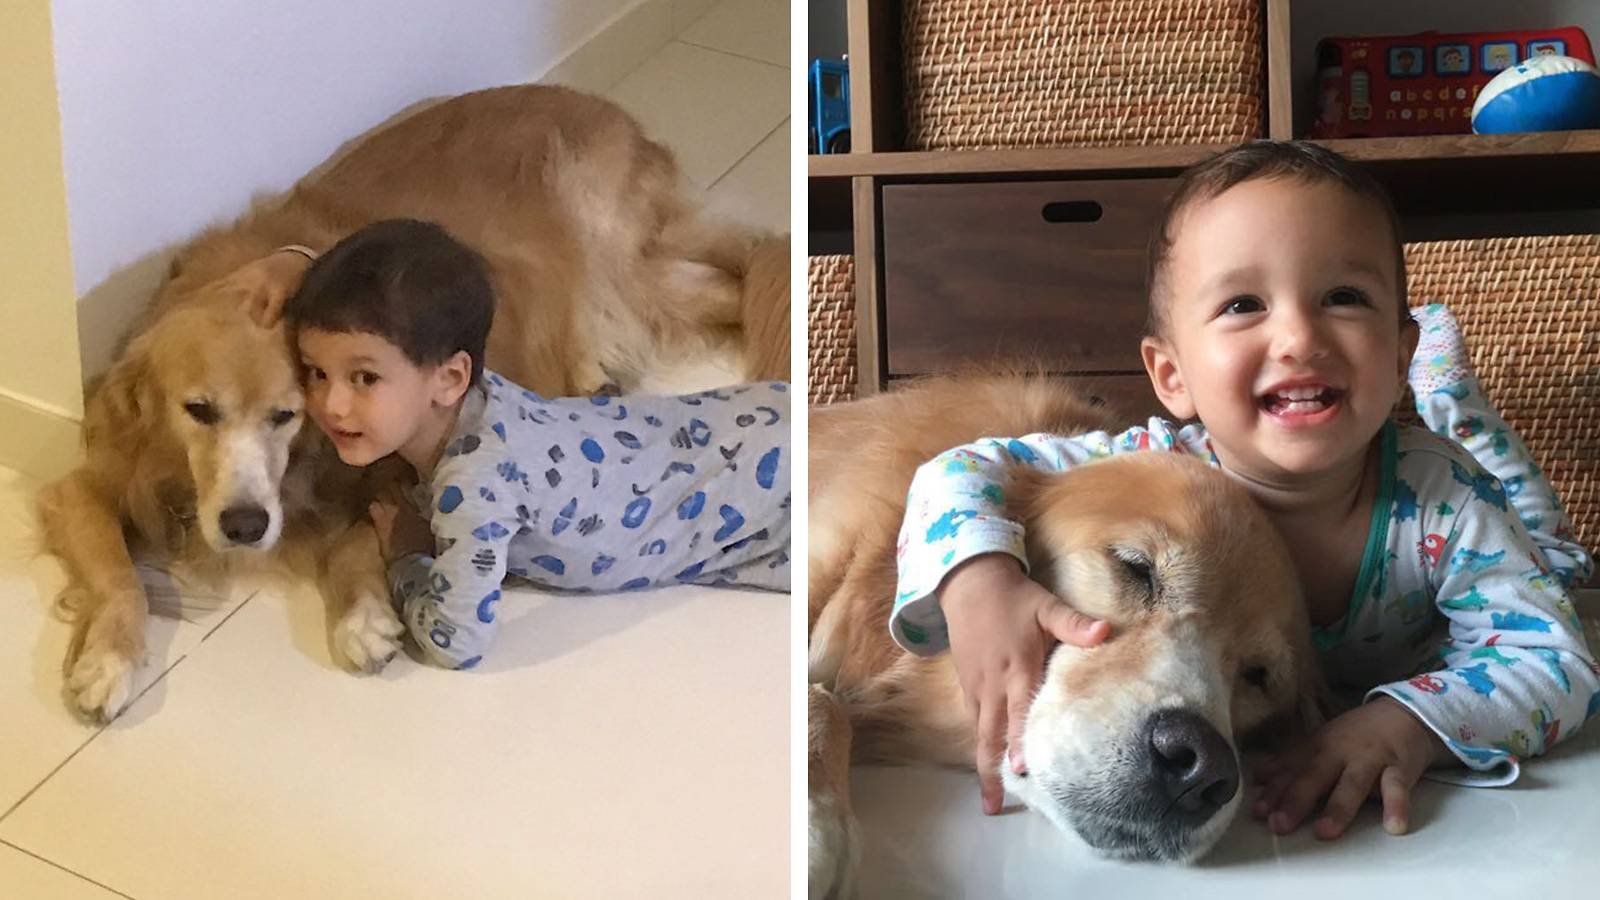 Tots-MUM-SAYS-Having-dogs-has-taught-my-kids-empathy-2